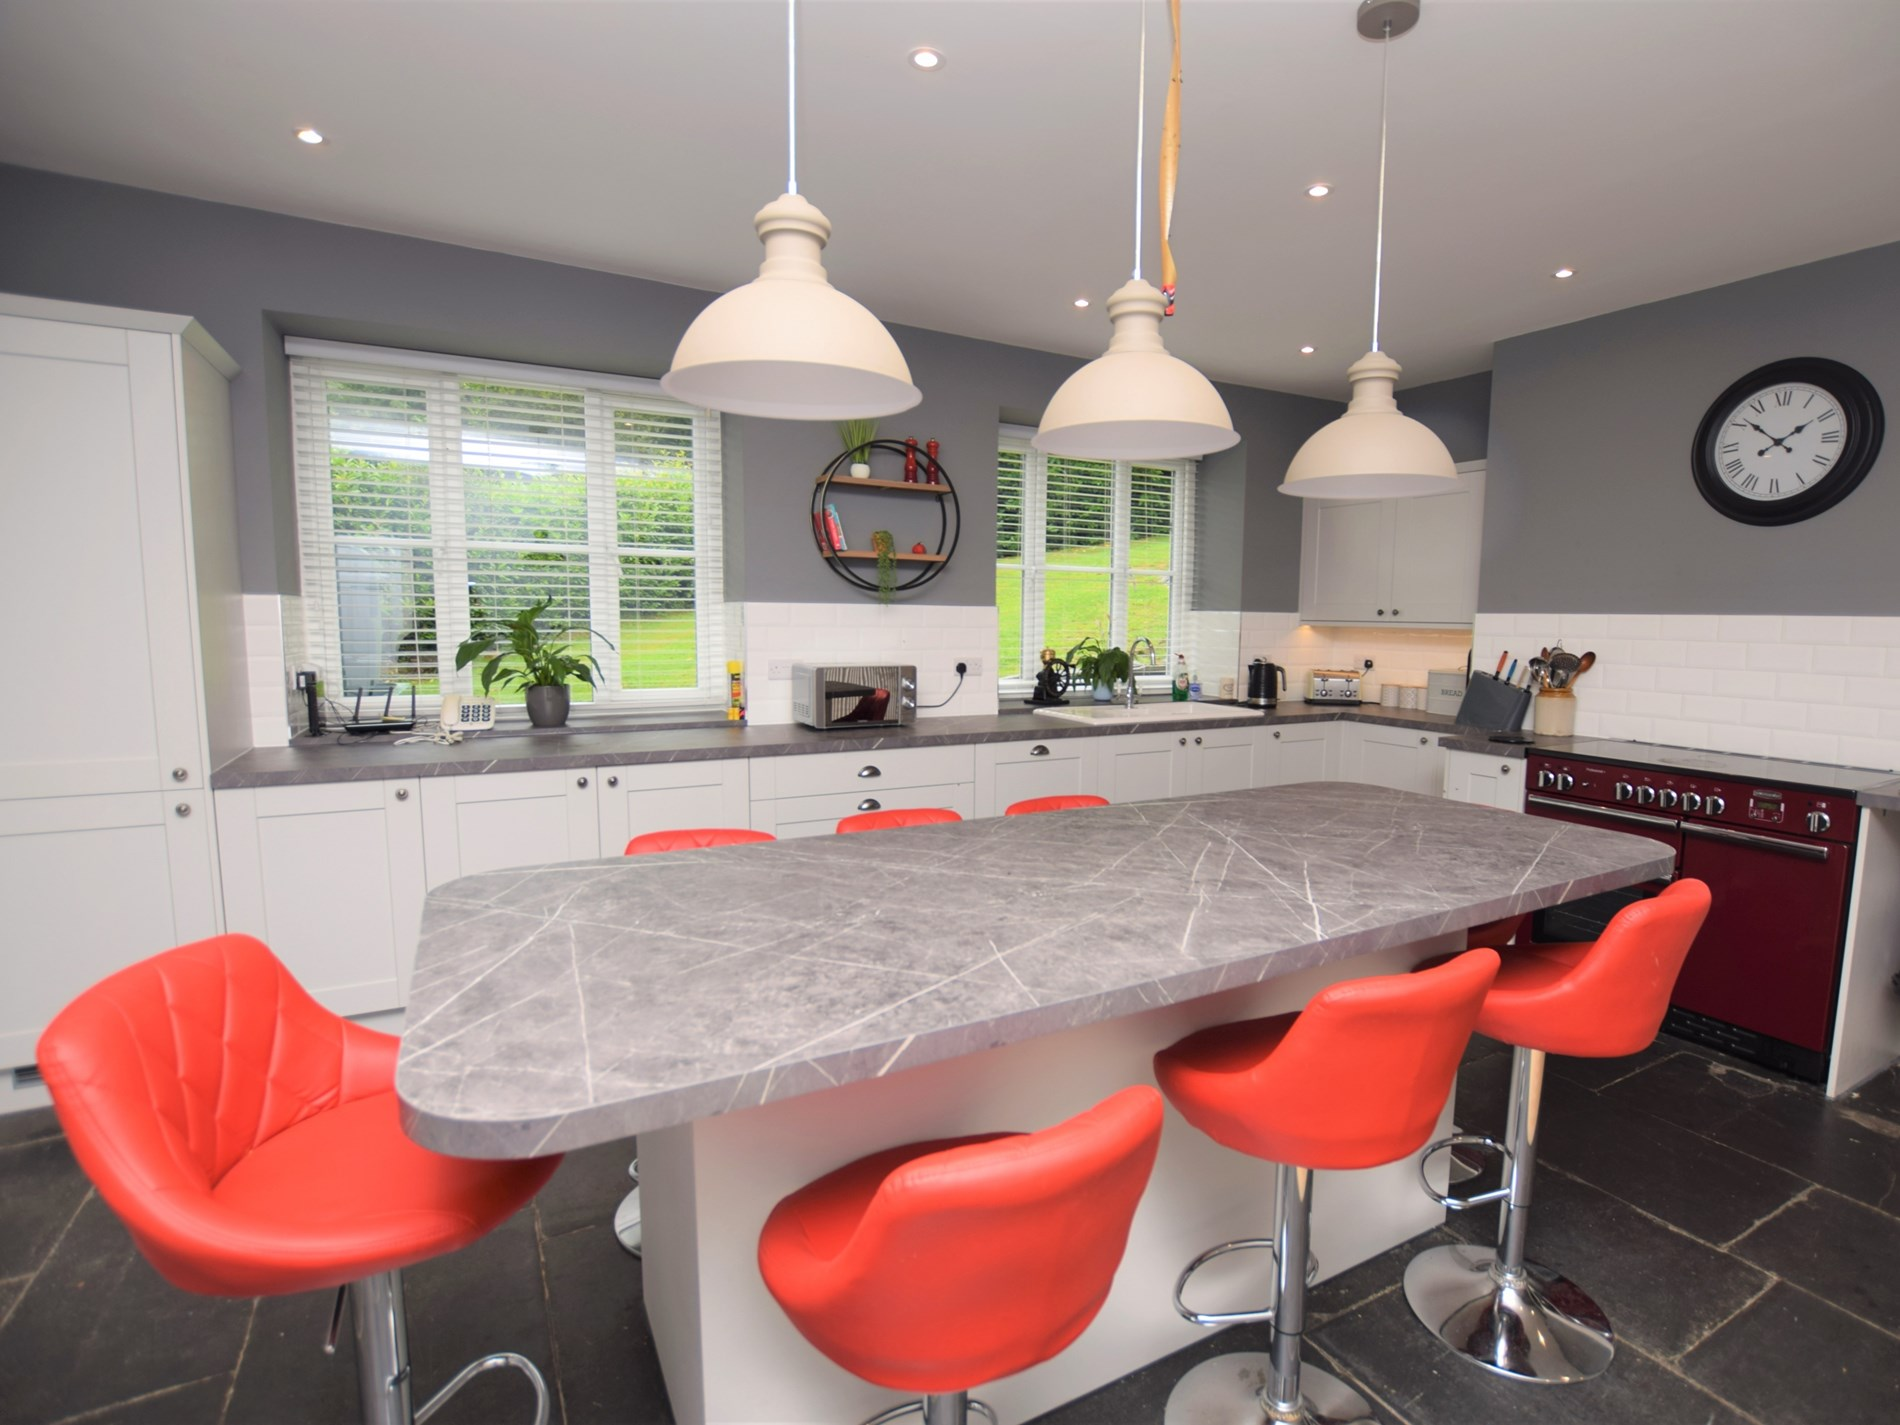 5 Bedroom House in North Wales, Pembrokeshire and the South